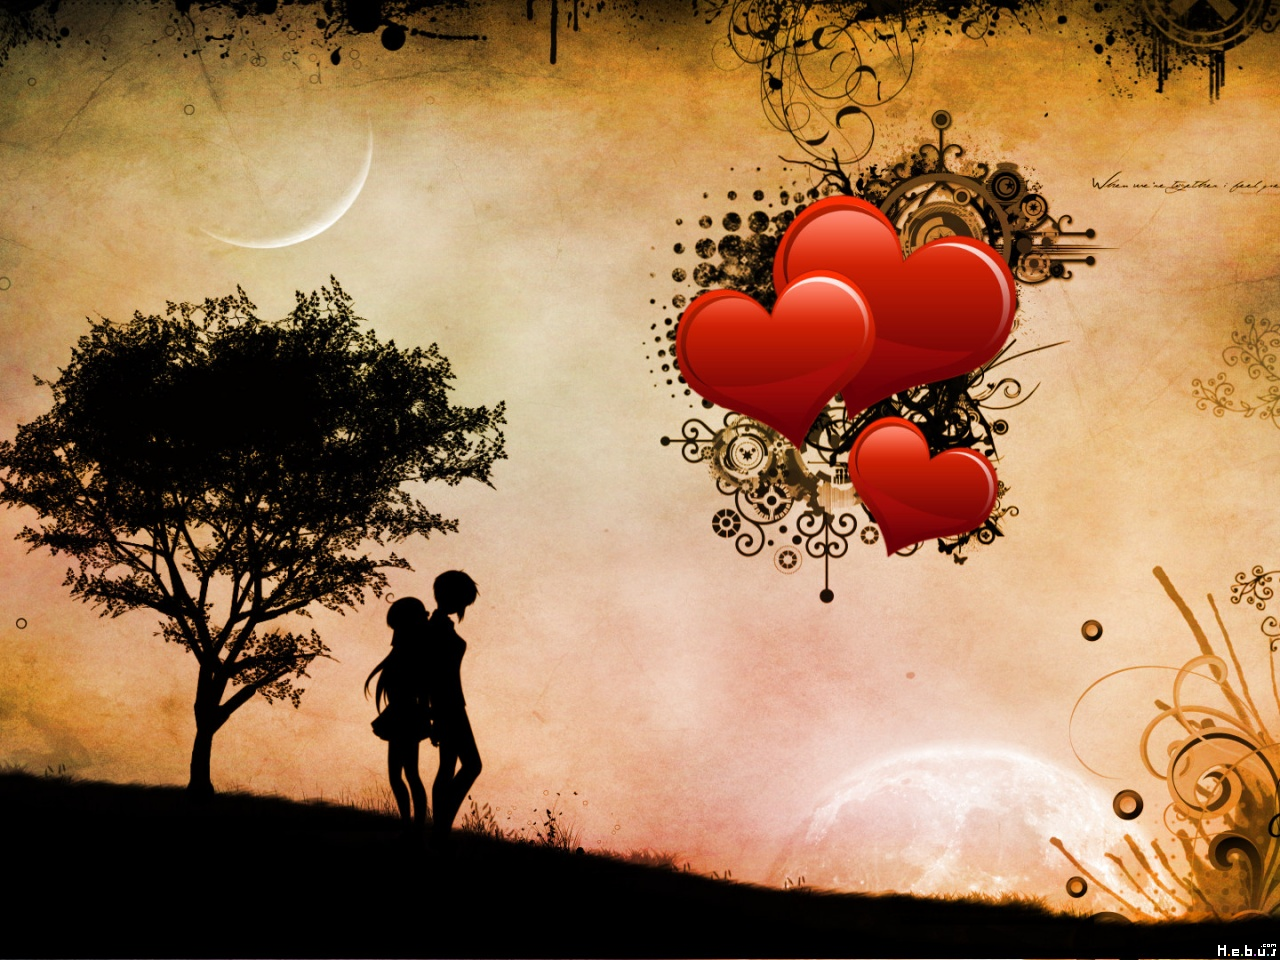 http://4.bp.blogspot.com/-qAYIlAjnk24/T_QPToX2pgI/AAAAAAAAD60/HrV9oC2xcQg/s1600/hd+wallpapers+of+love-4.jpg